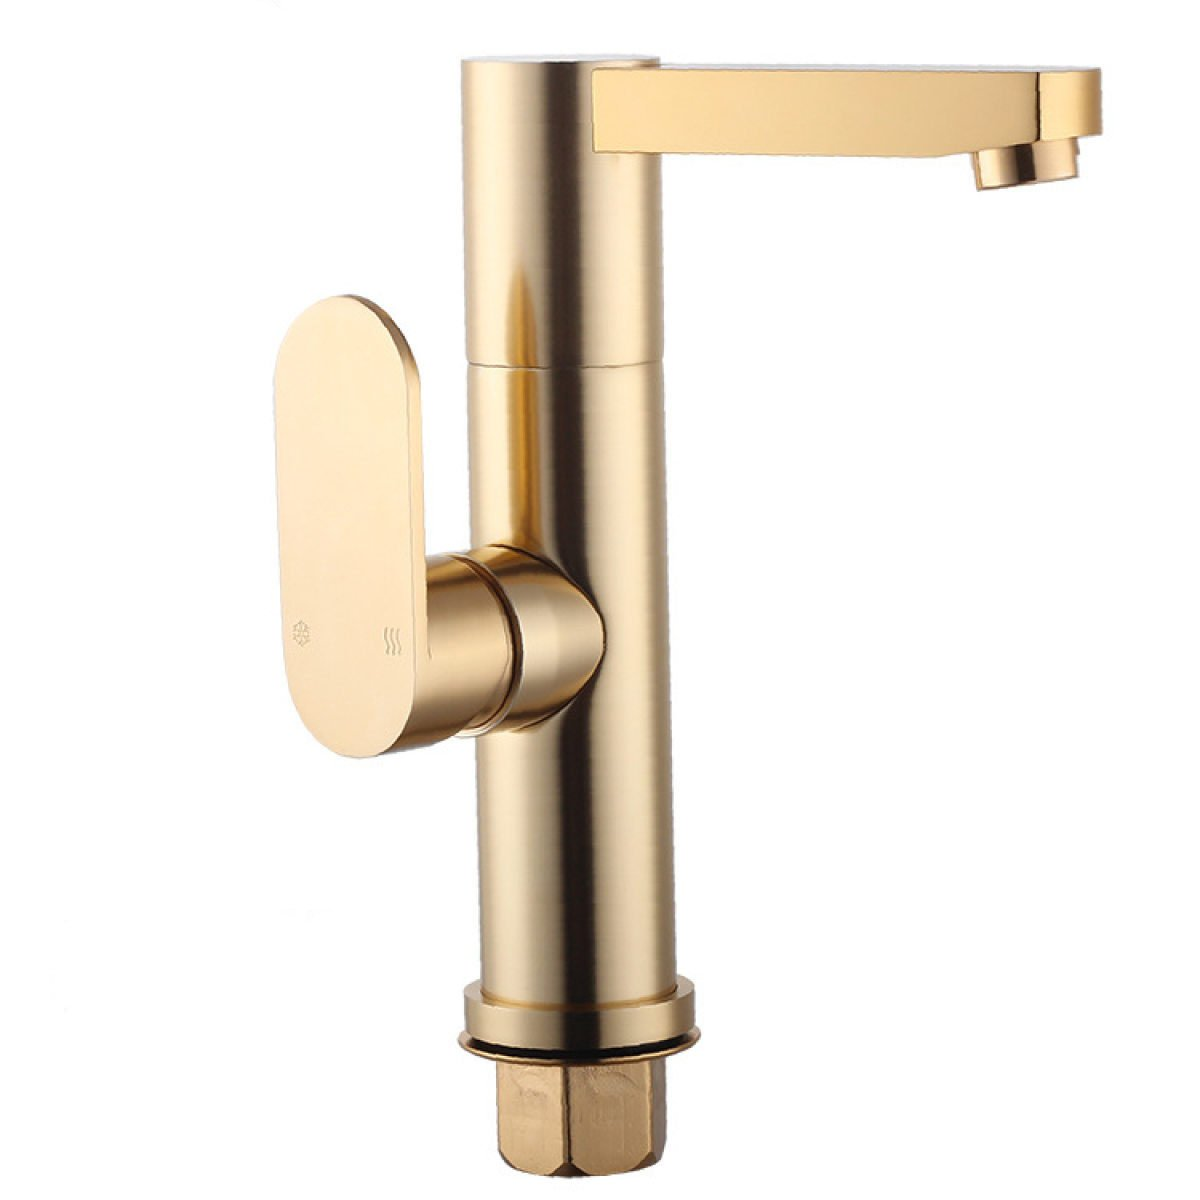 LDONGSH Space Aluminum Gold Bathroom Cabinet European Style American Style Satin Finish Wash Basin Electroplating Bathroom Toilet Faucet